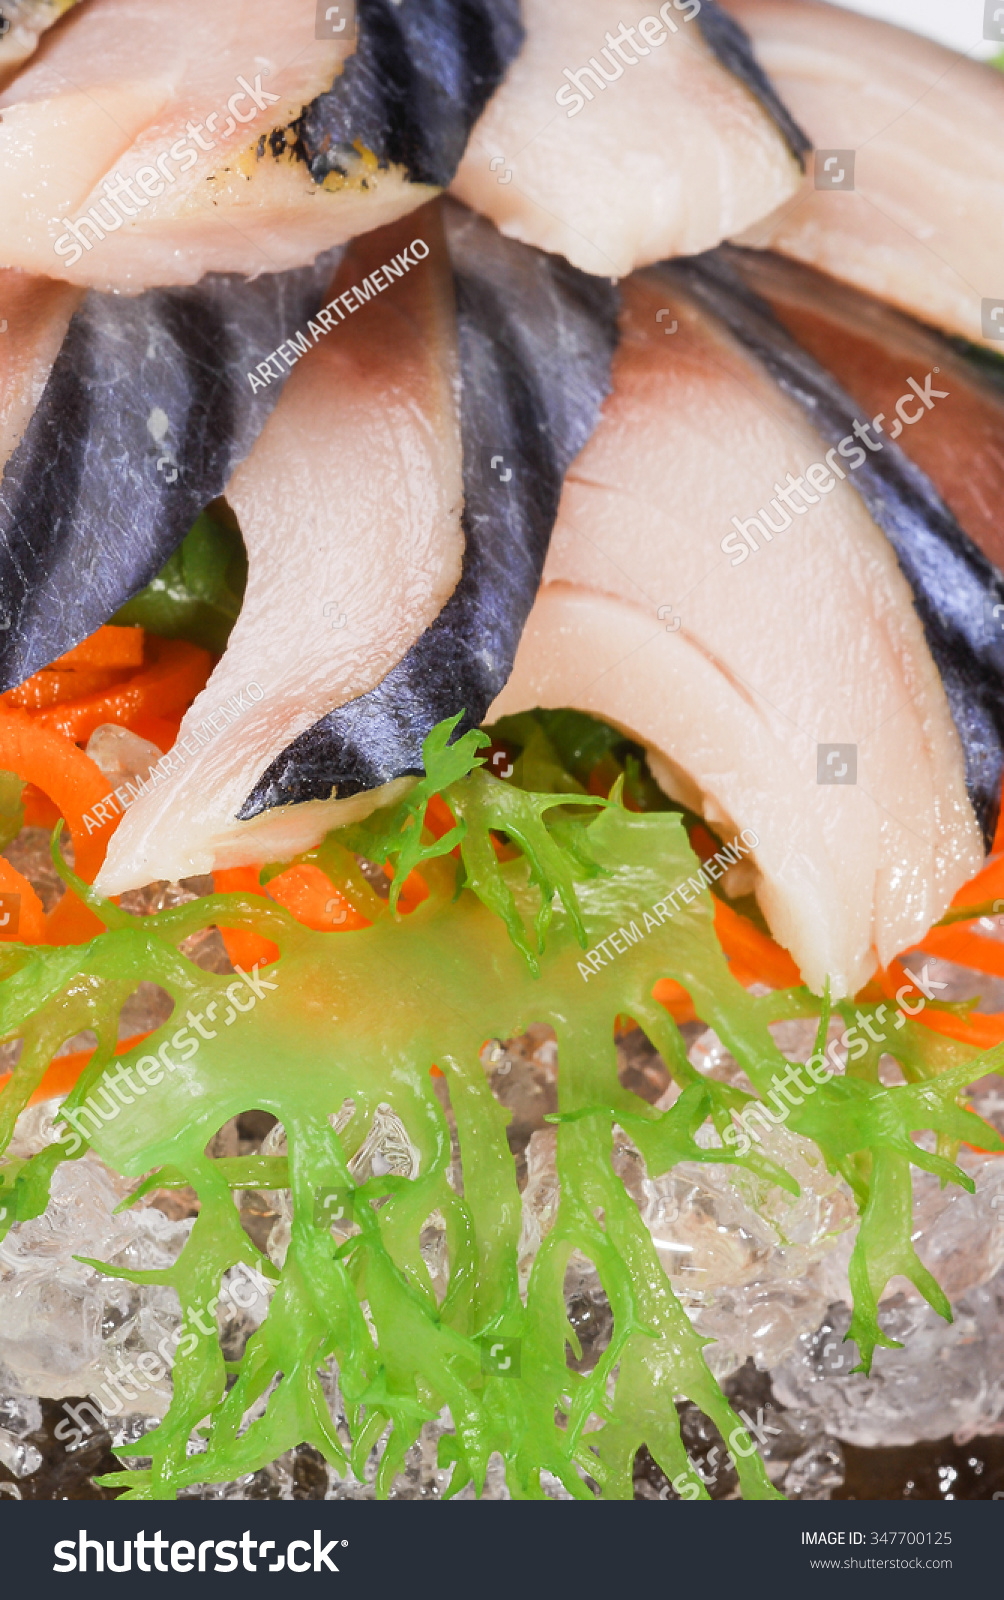 sashimi herring, herring,  macro shallow depth of field #347700125